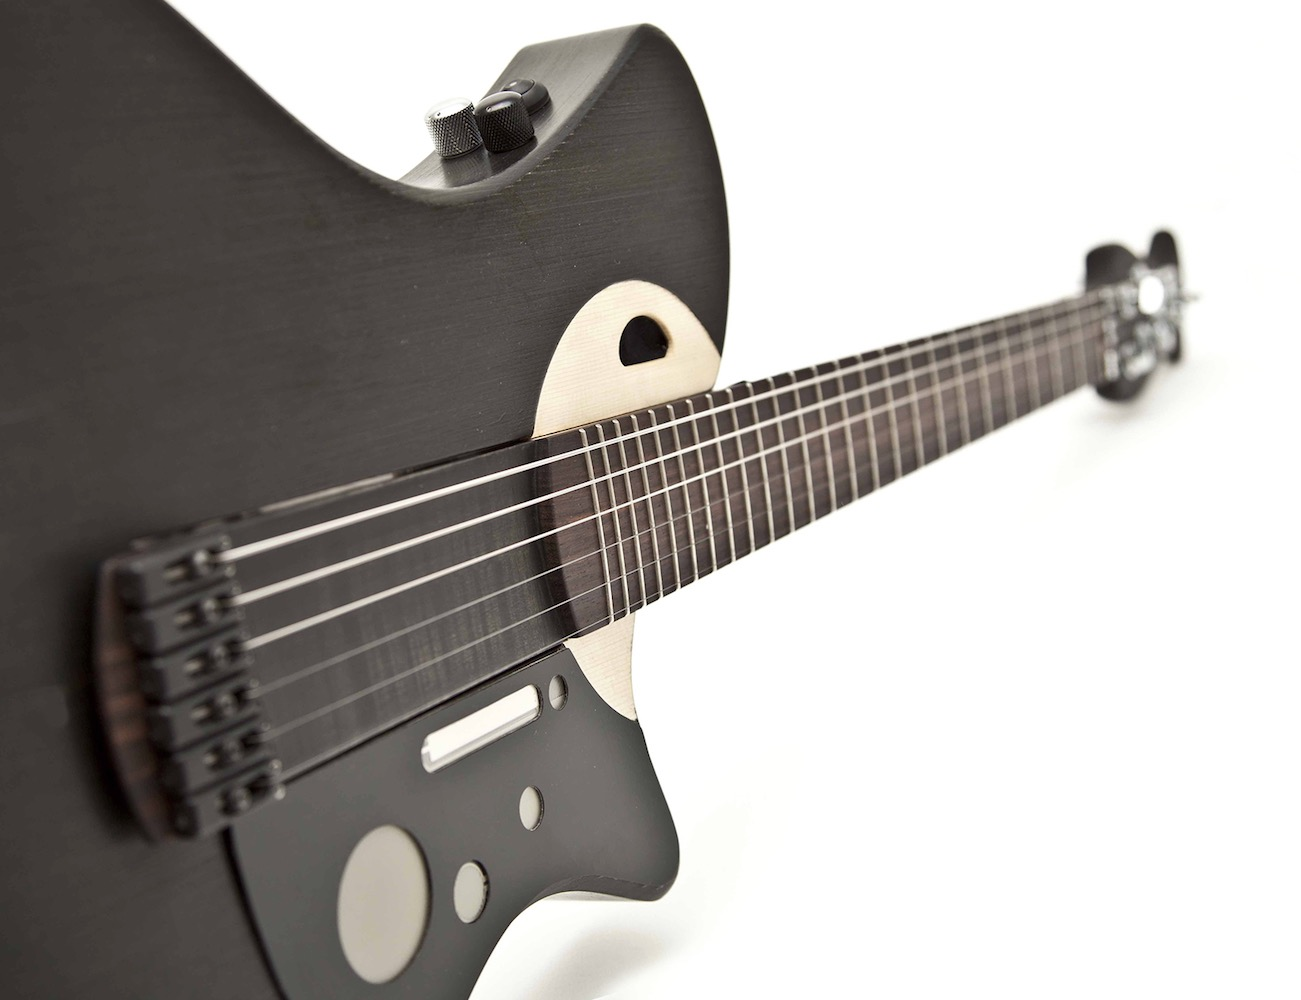 Sensus Smart Guitar by Mind Music Labs